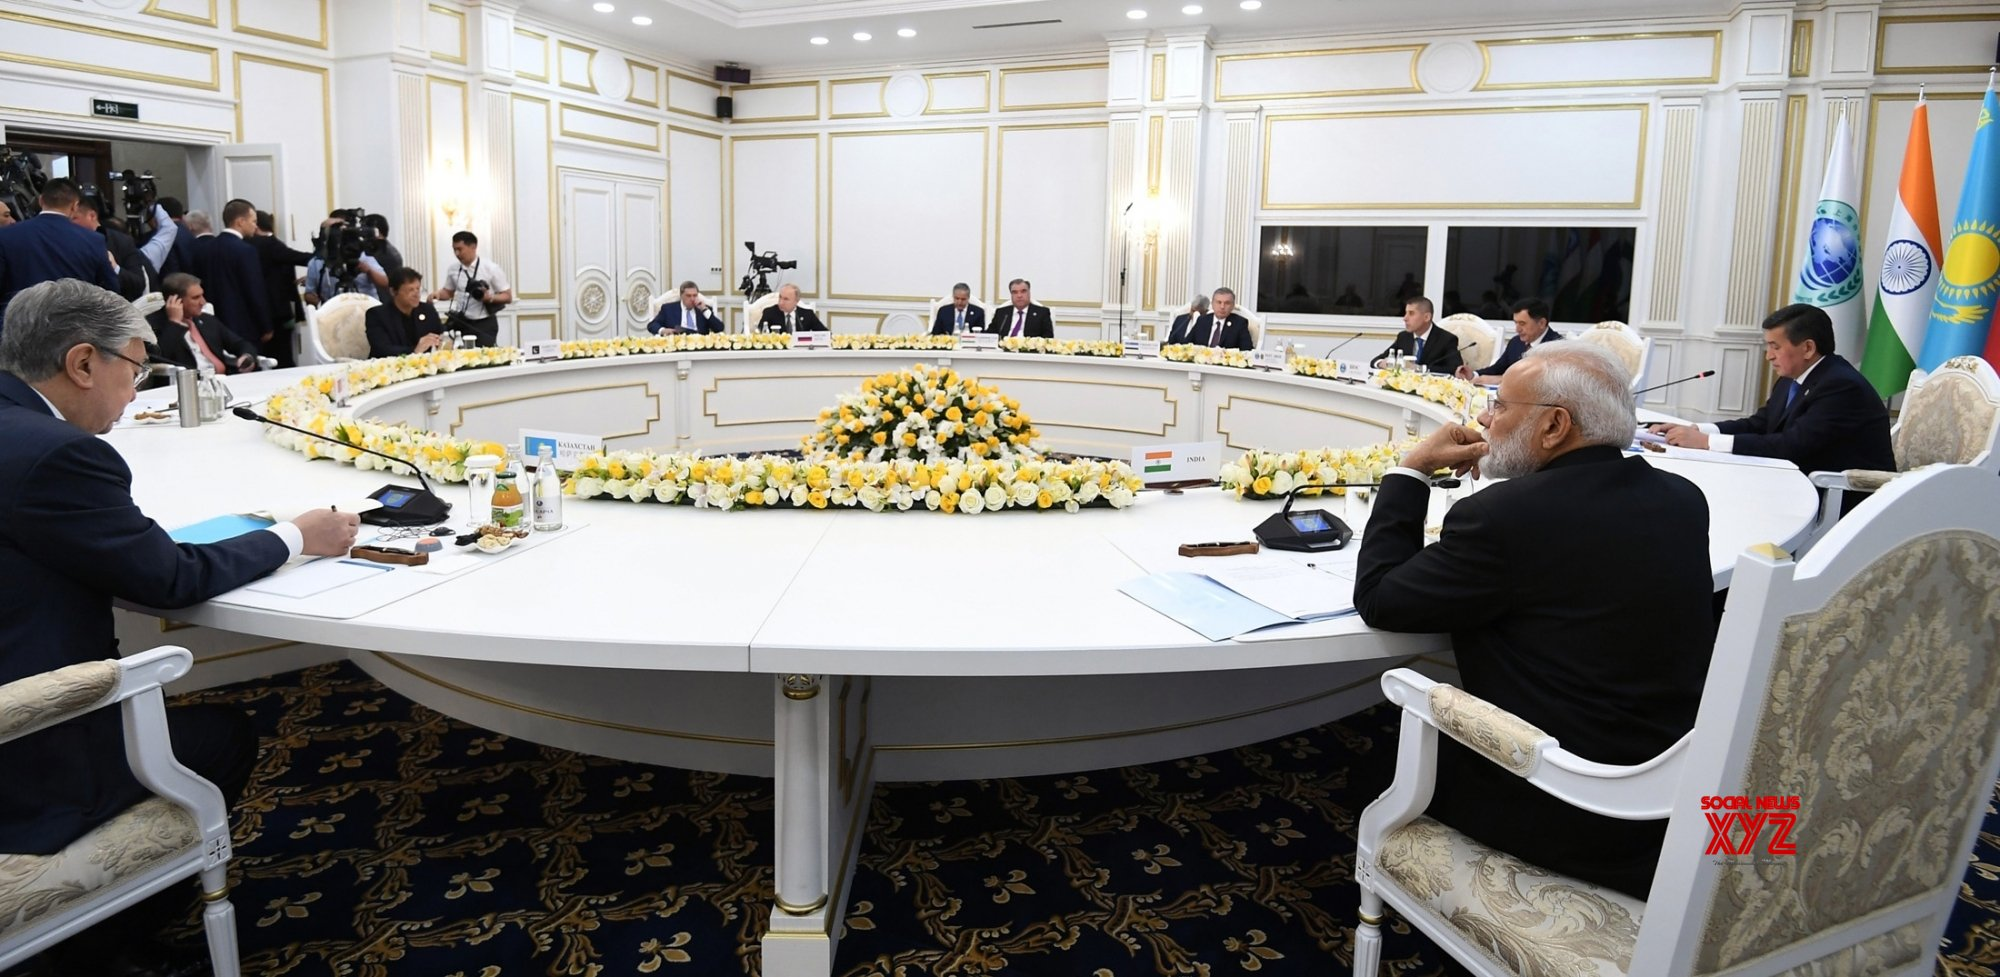 Bishkek: PM Modi at the Restricted Session of 2019 SCO Summit in Kyrgyzstan #Gallery